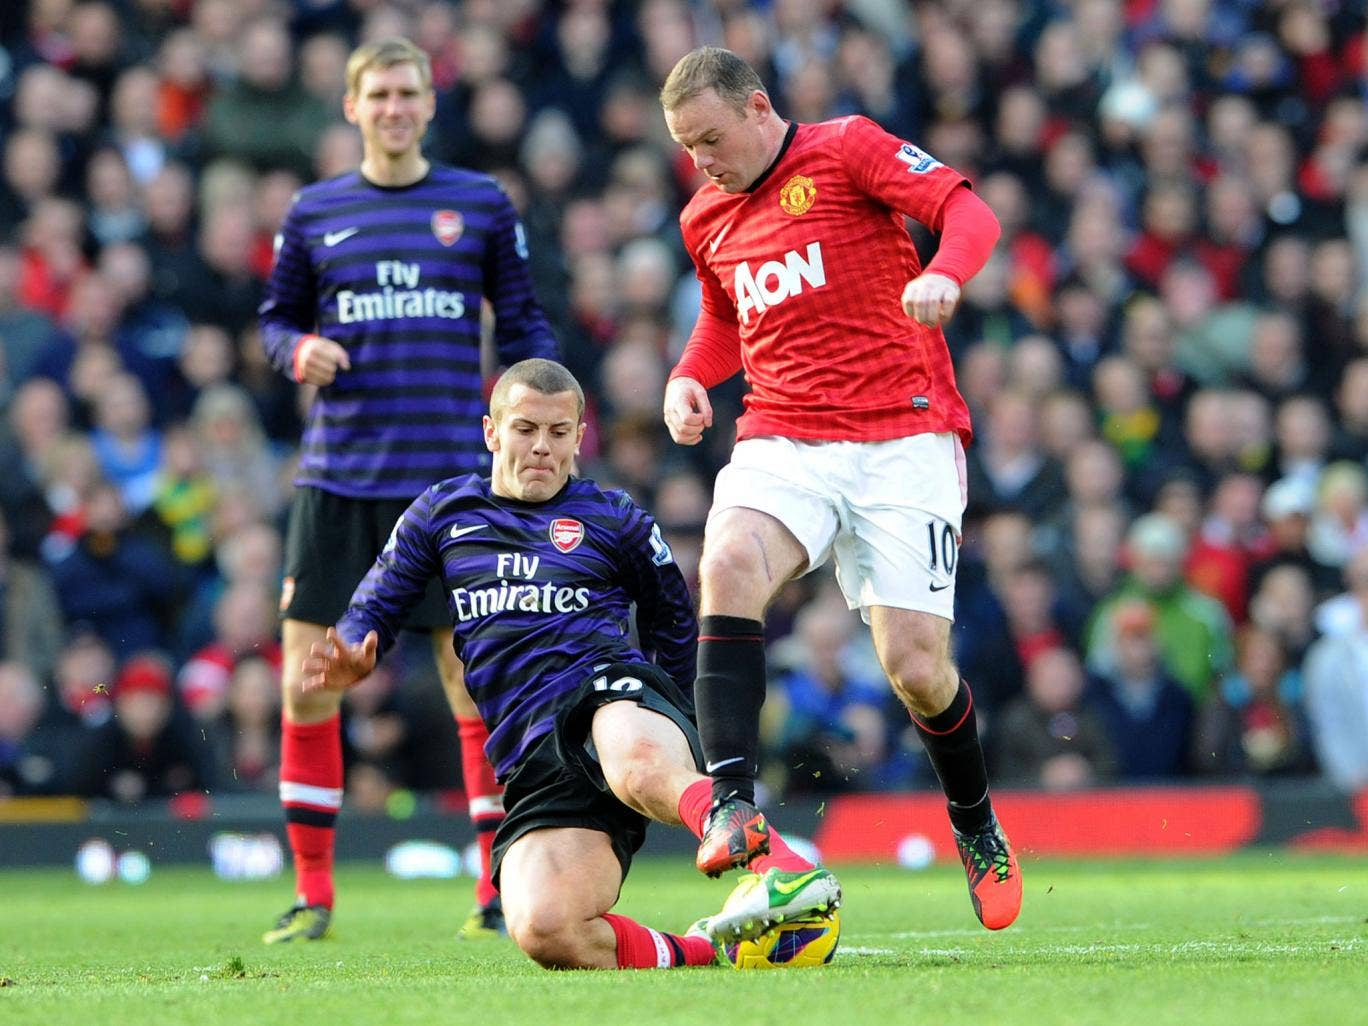 Wayne Rooney has a fine record against Arsenal